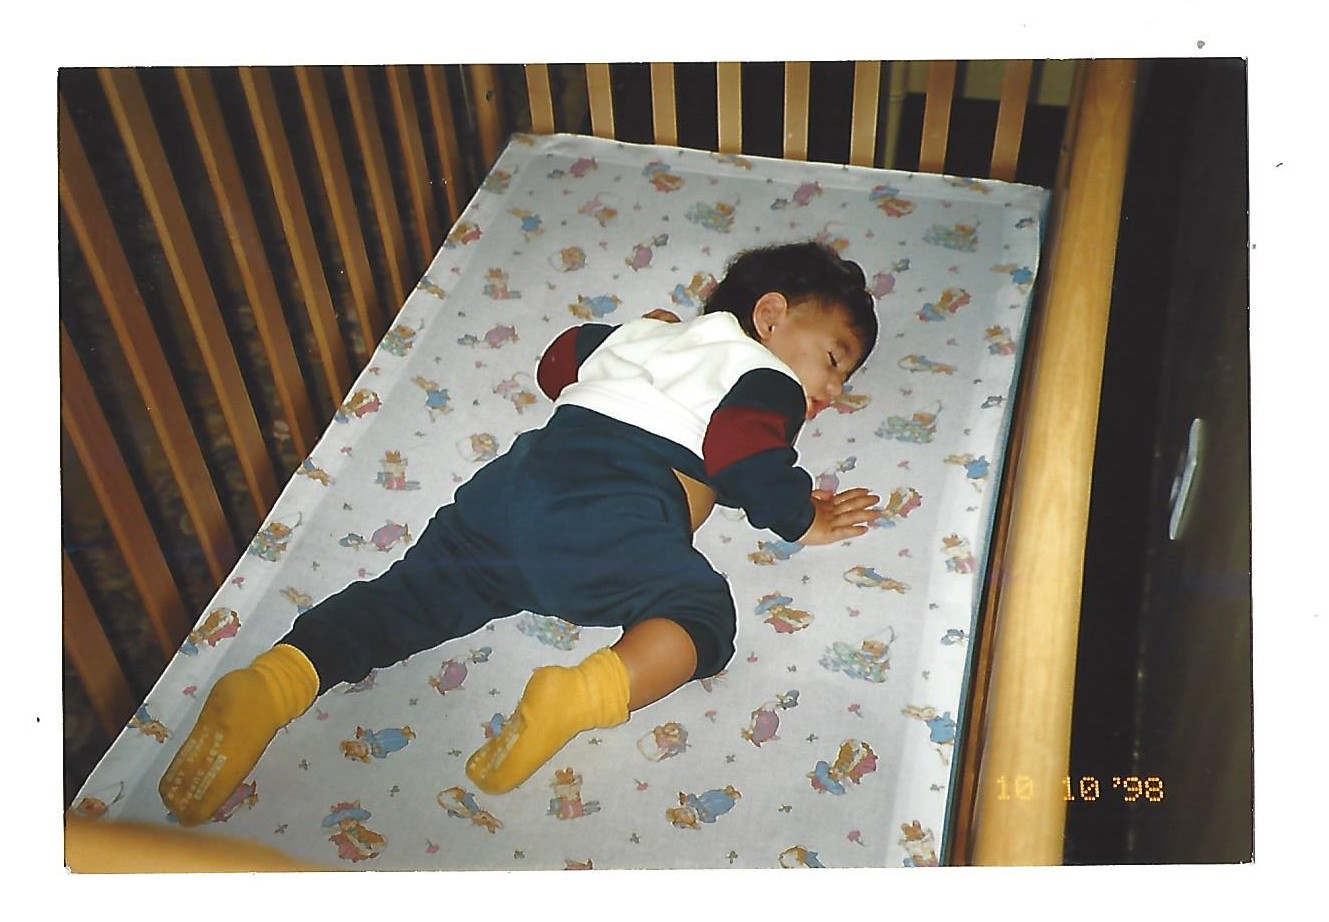 The story of the Breathe Easy Baby Sleep System